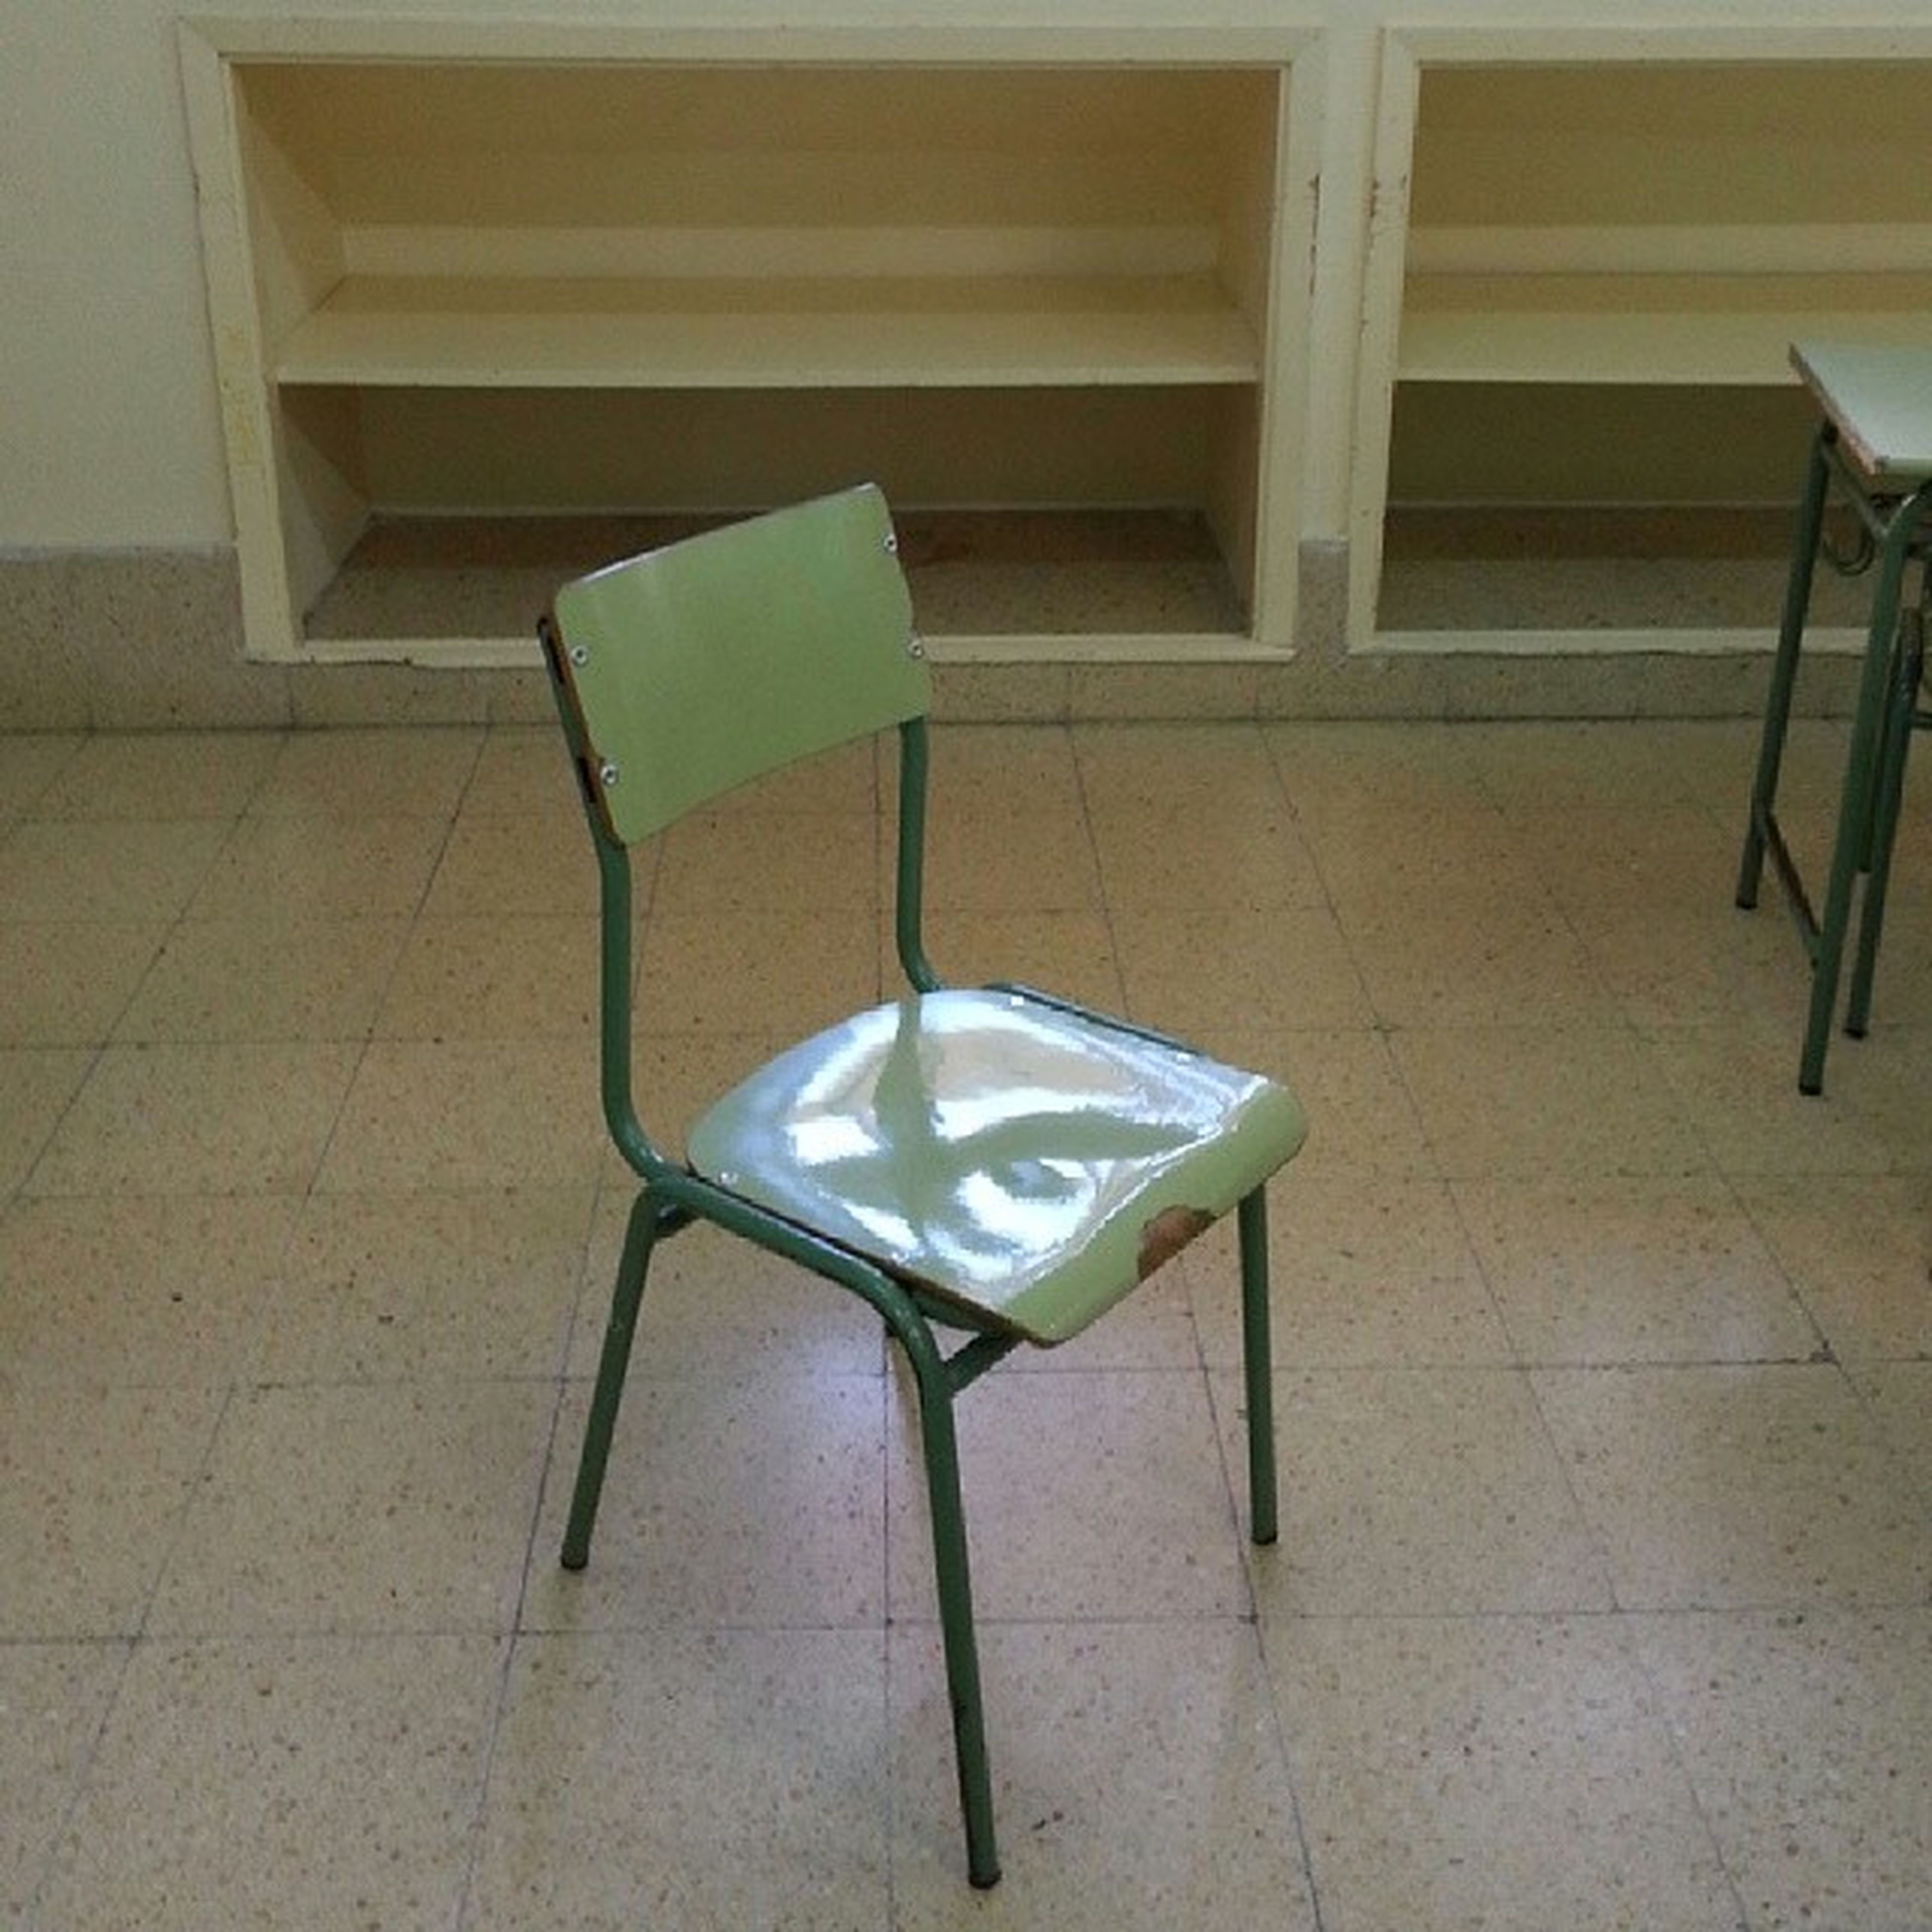 chair, indoors, absence, empty, table, still life, furniture, tiled floor, flooring, wall - building feature, high angle view, seat, architecture, no people, built structure, shadow, wood - material, wall, home interior, sunlight